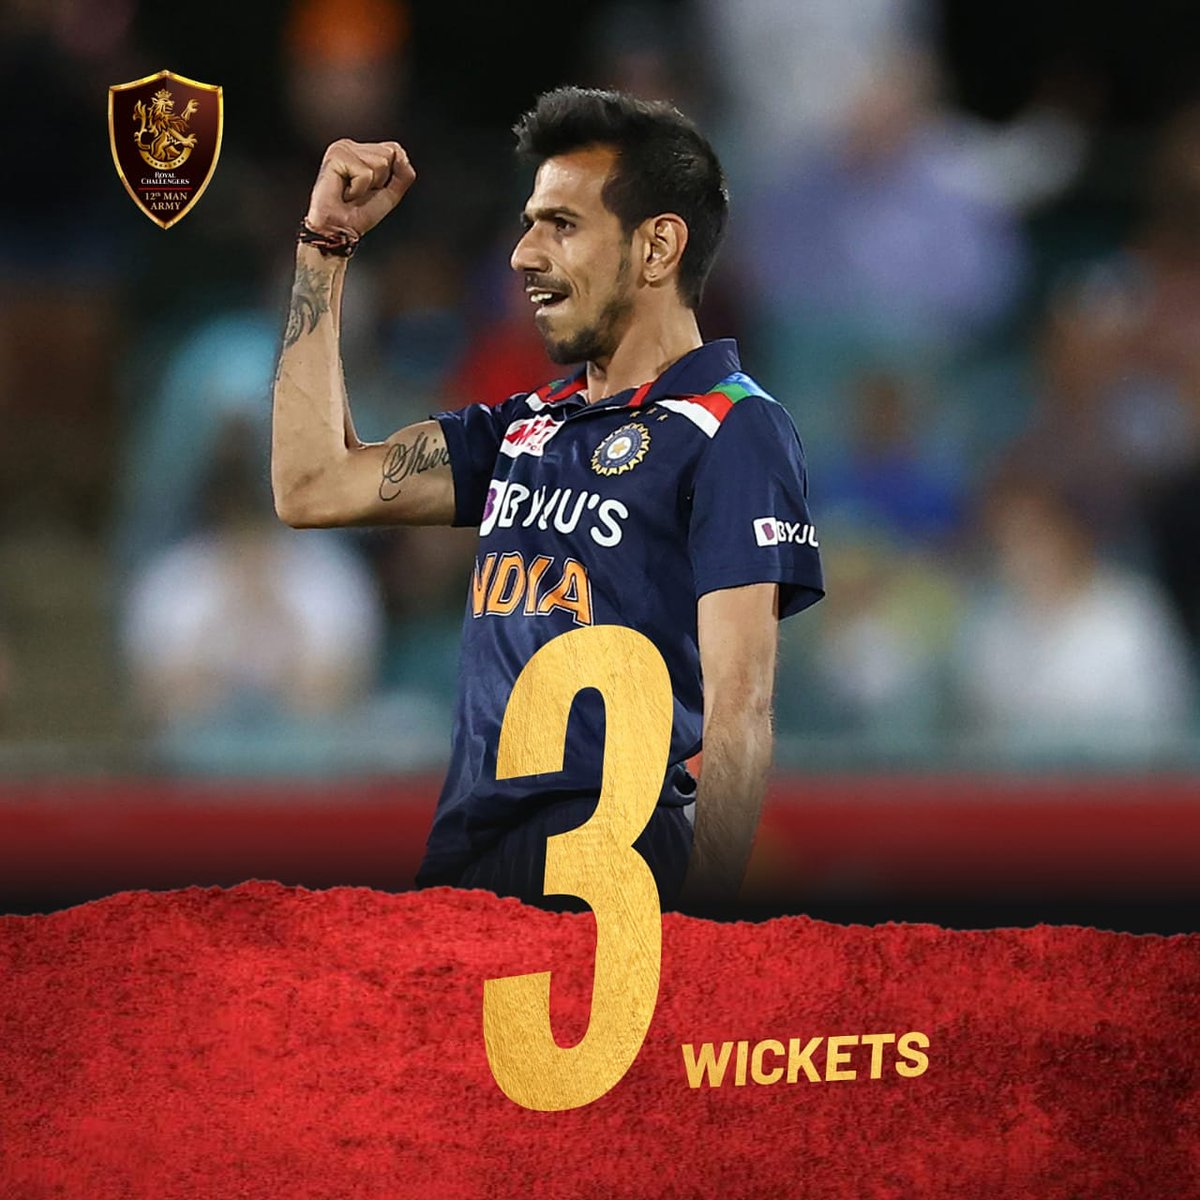 4⃣ overs  2⃣5⃣ runs  3⃣ wickets  A game-changer in the truest sense of the word. How good was @yuzi_chahal today, 12th Man Army? 🤩  #RCB12thManArmy #PlayBold #TeamIndia #DownUnder #AUSvIND